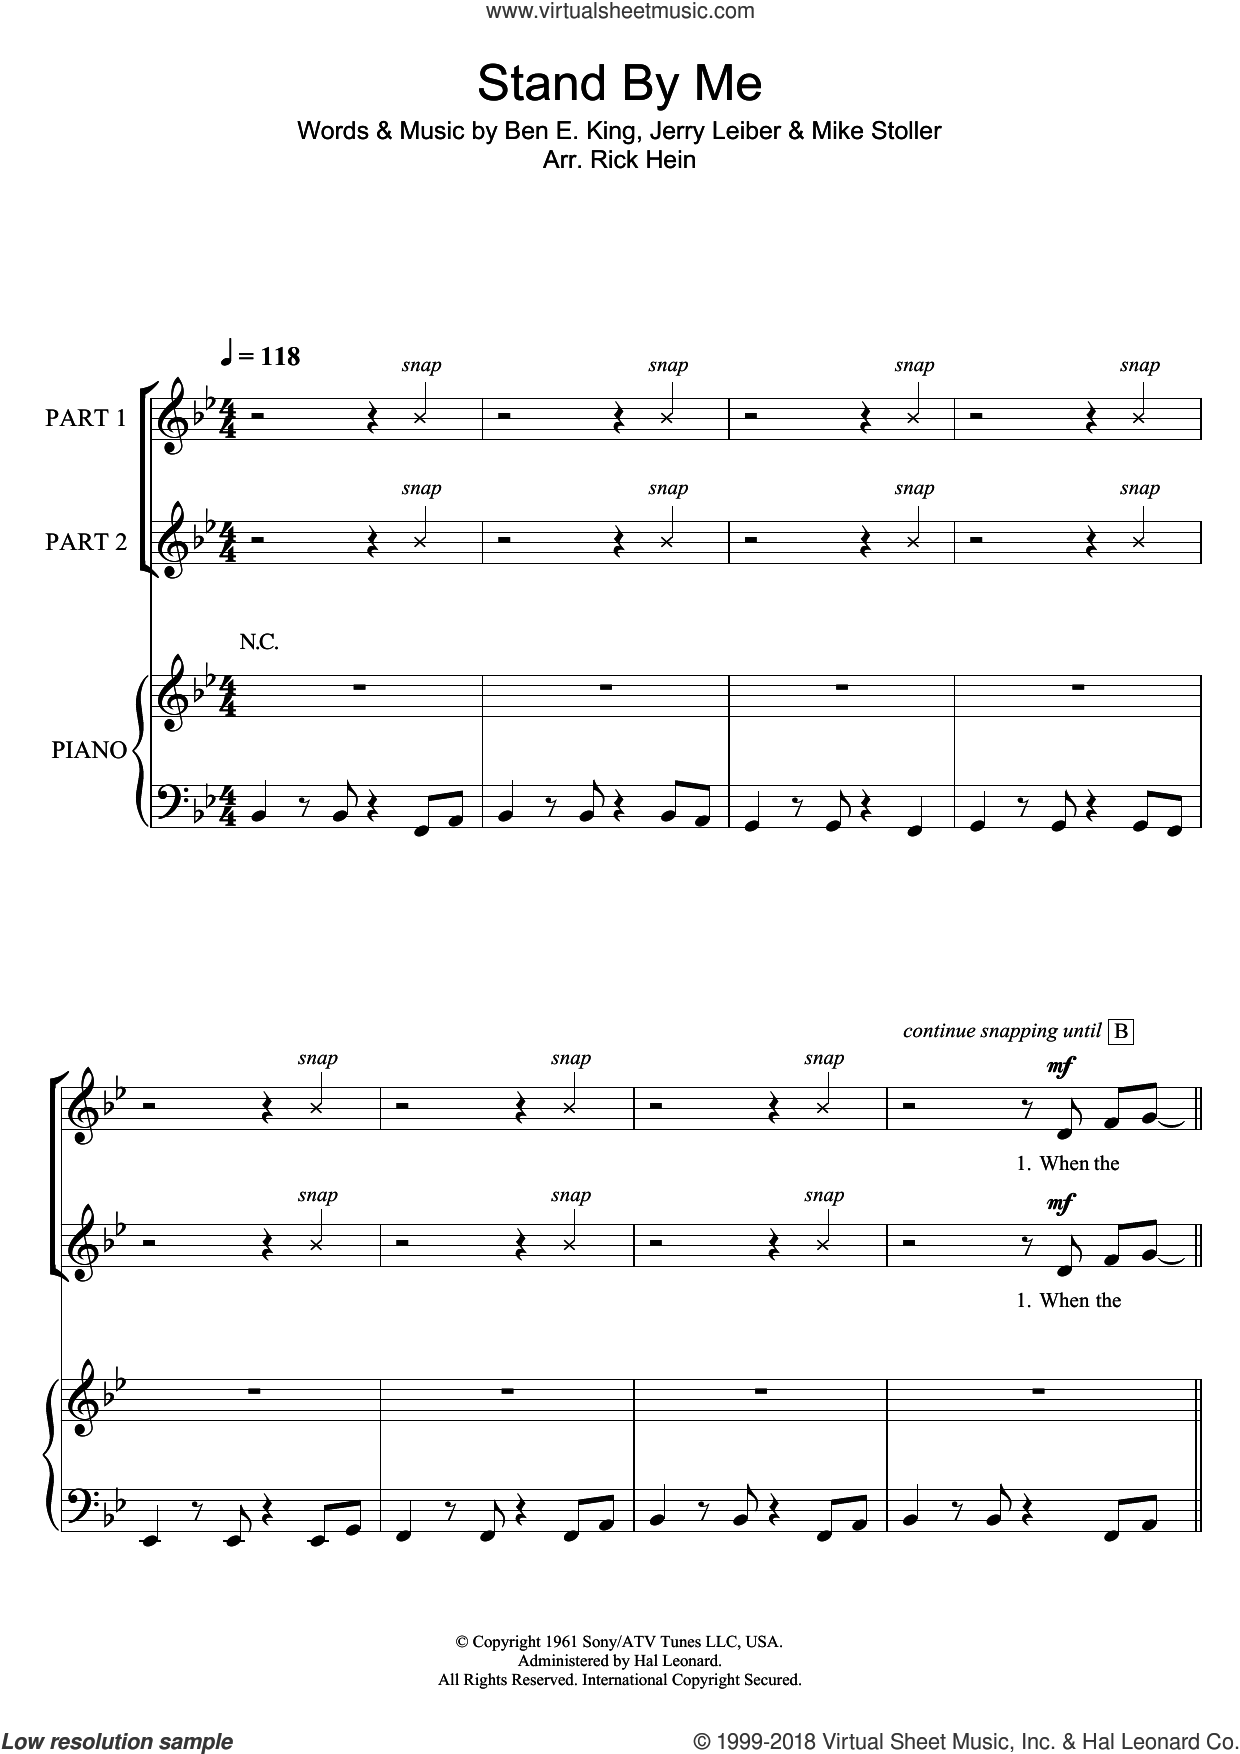 Stand By Me (arr. Rick Hein) sheet music for choir by Ben E. King, Rick Hein, Jerry Leiber and Mike Stoller, intermediate skill level